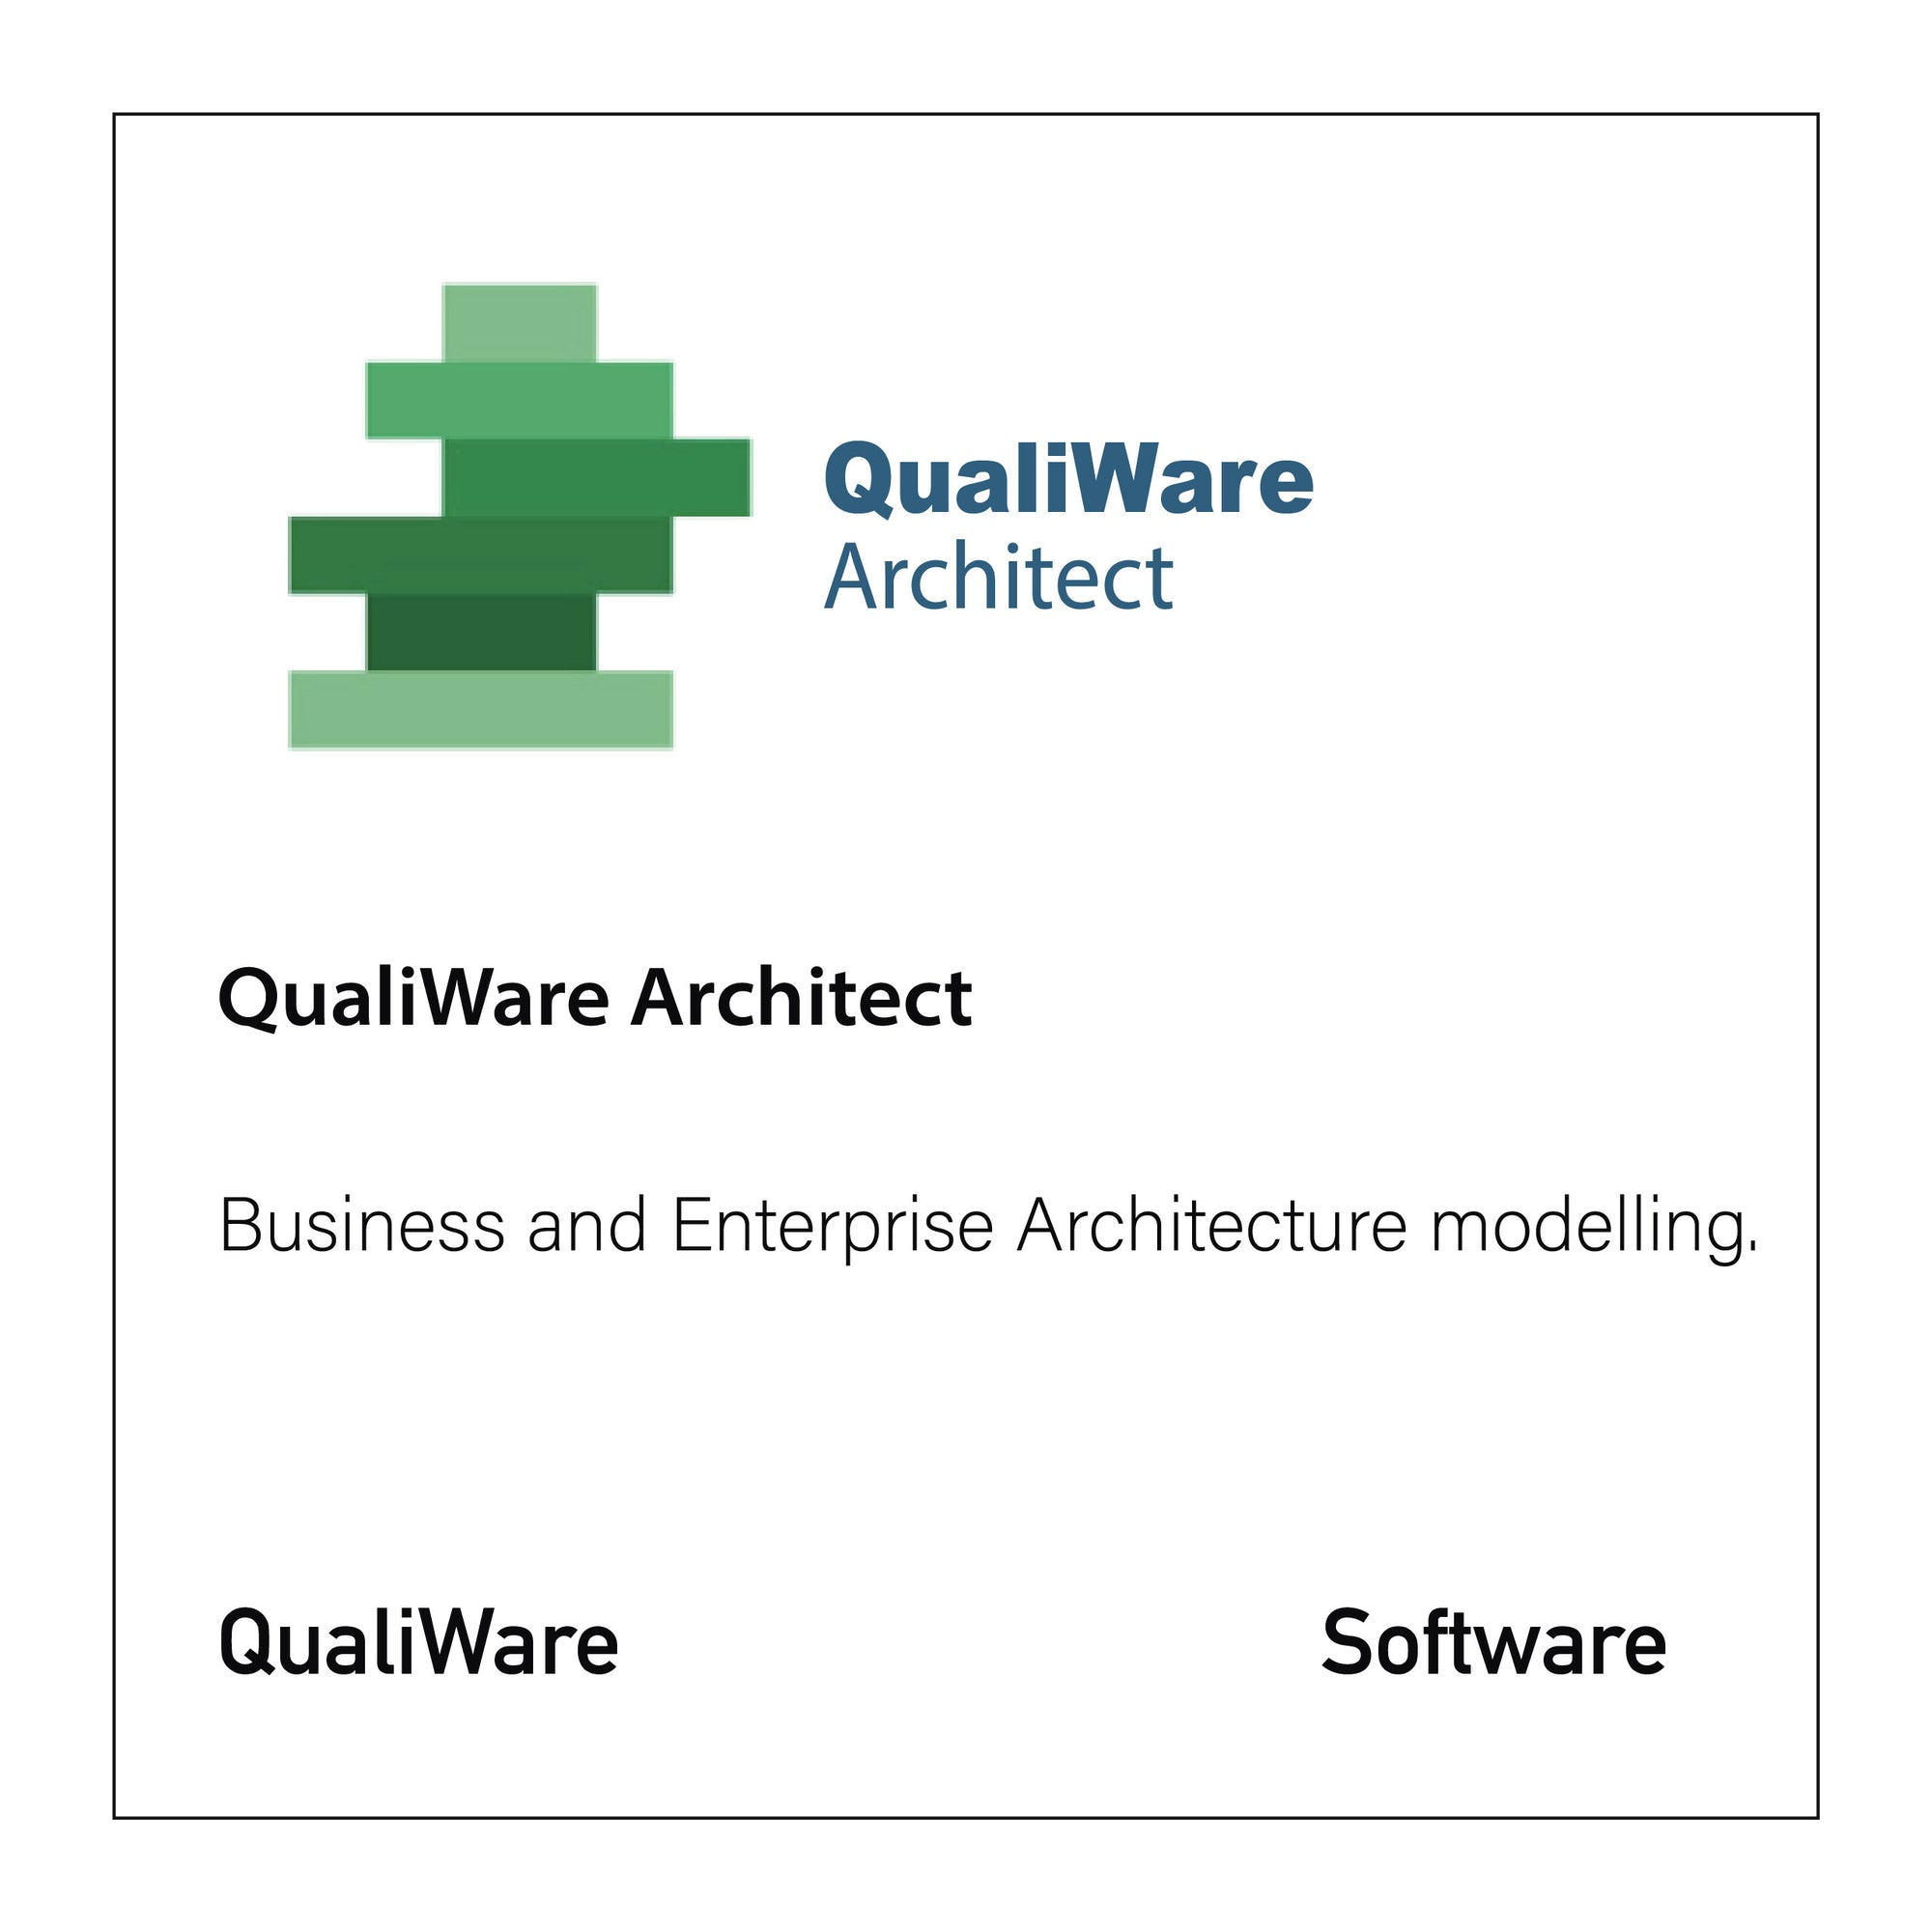 QualiWare Architect - CloseReach Ltd